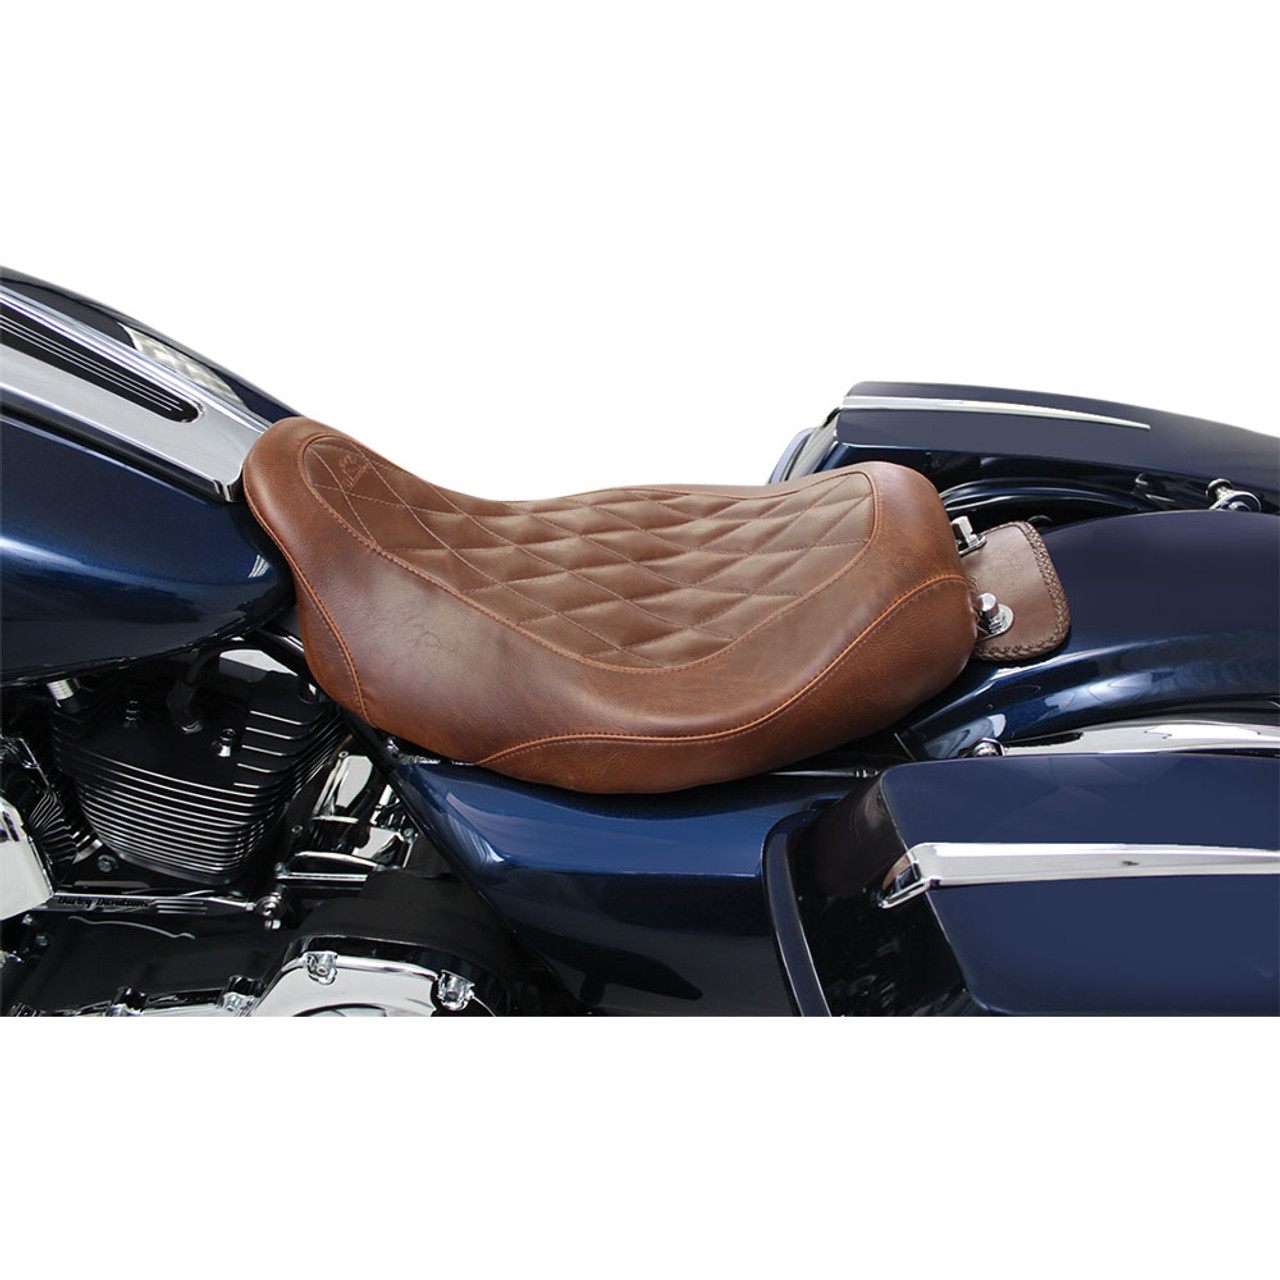 Distressed Brown Mustang 76730 Wide Tripper Solo Motorcycle Seat with Diamond Stitching for Harley-Davidson Sportster 2004-20